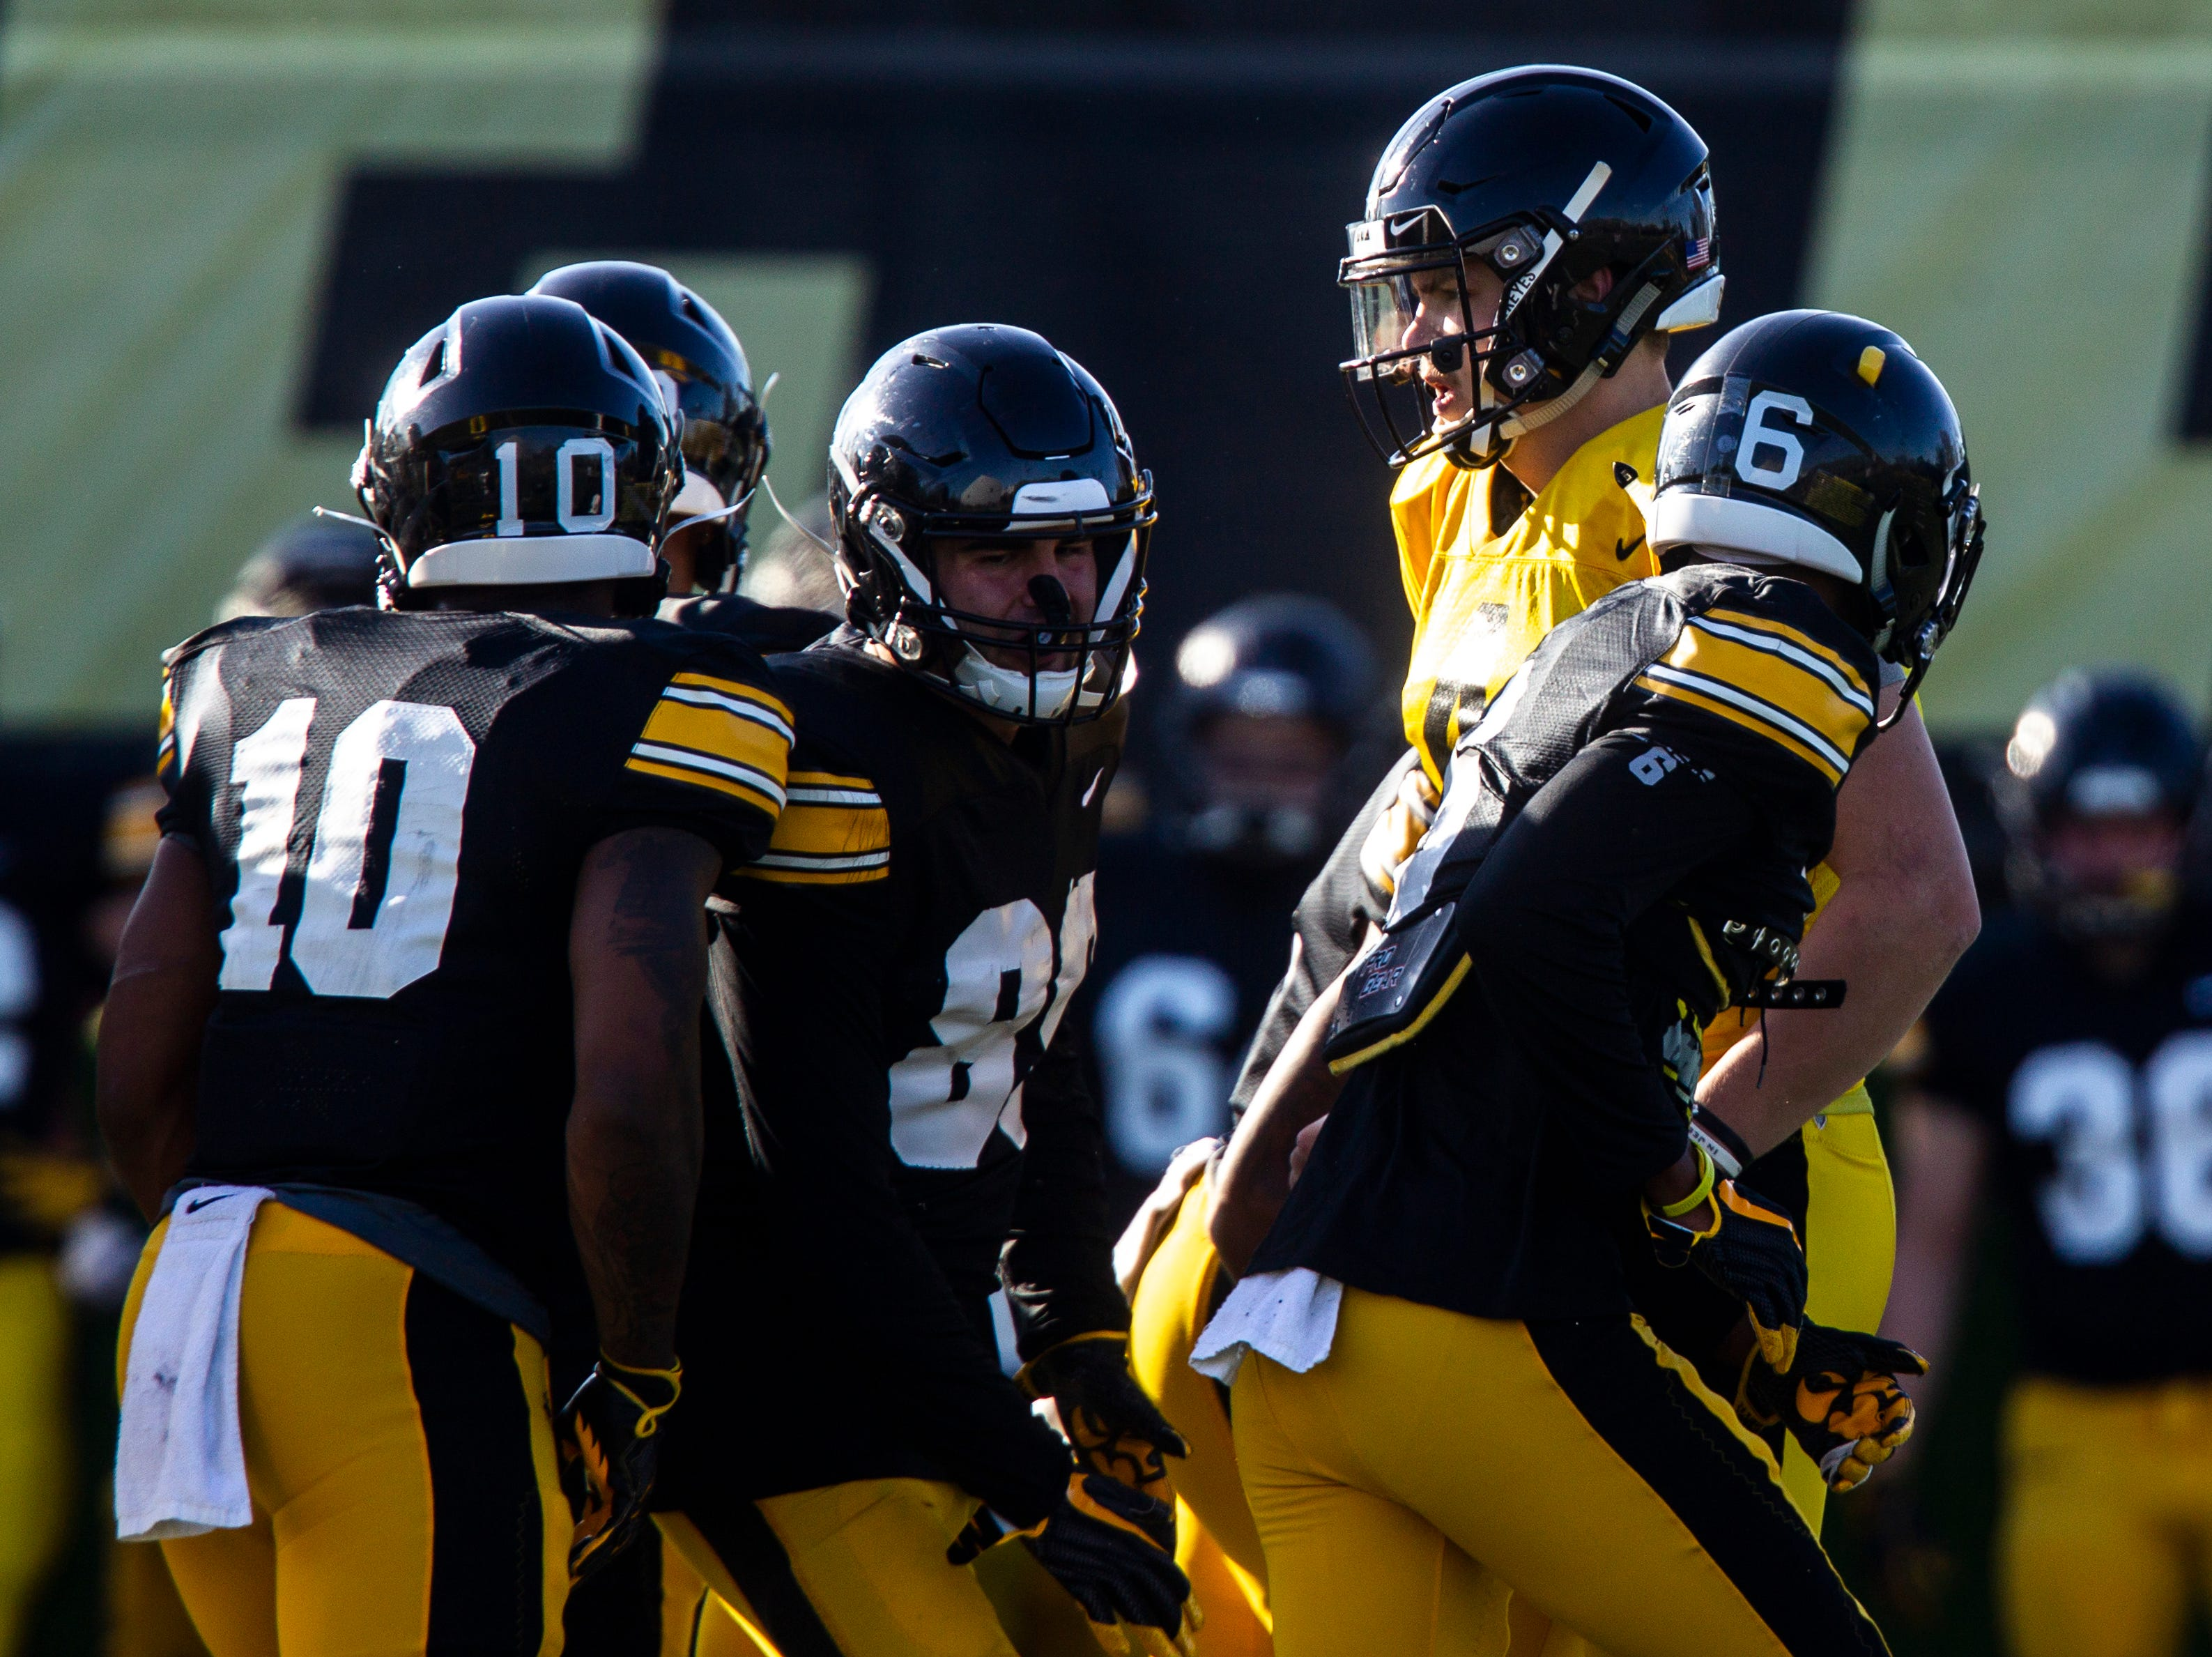 Iowa quarterback Nate Stanley calls a play in the huddle to teammates Mekhi Sargent (10) Nico Ragaini (89) and Ihmir Smith-Marstte (6) during the final spring football practice, Friday, April 26, 2019, at the University of Iowa outdoor practice facility in Iowa City, Iowa.